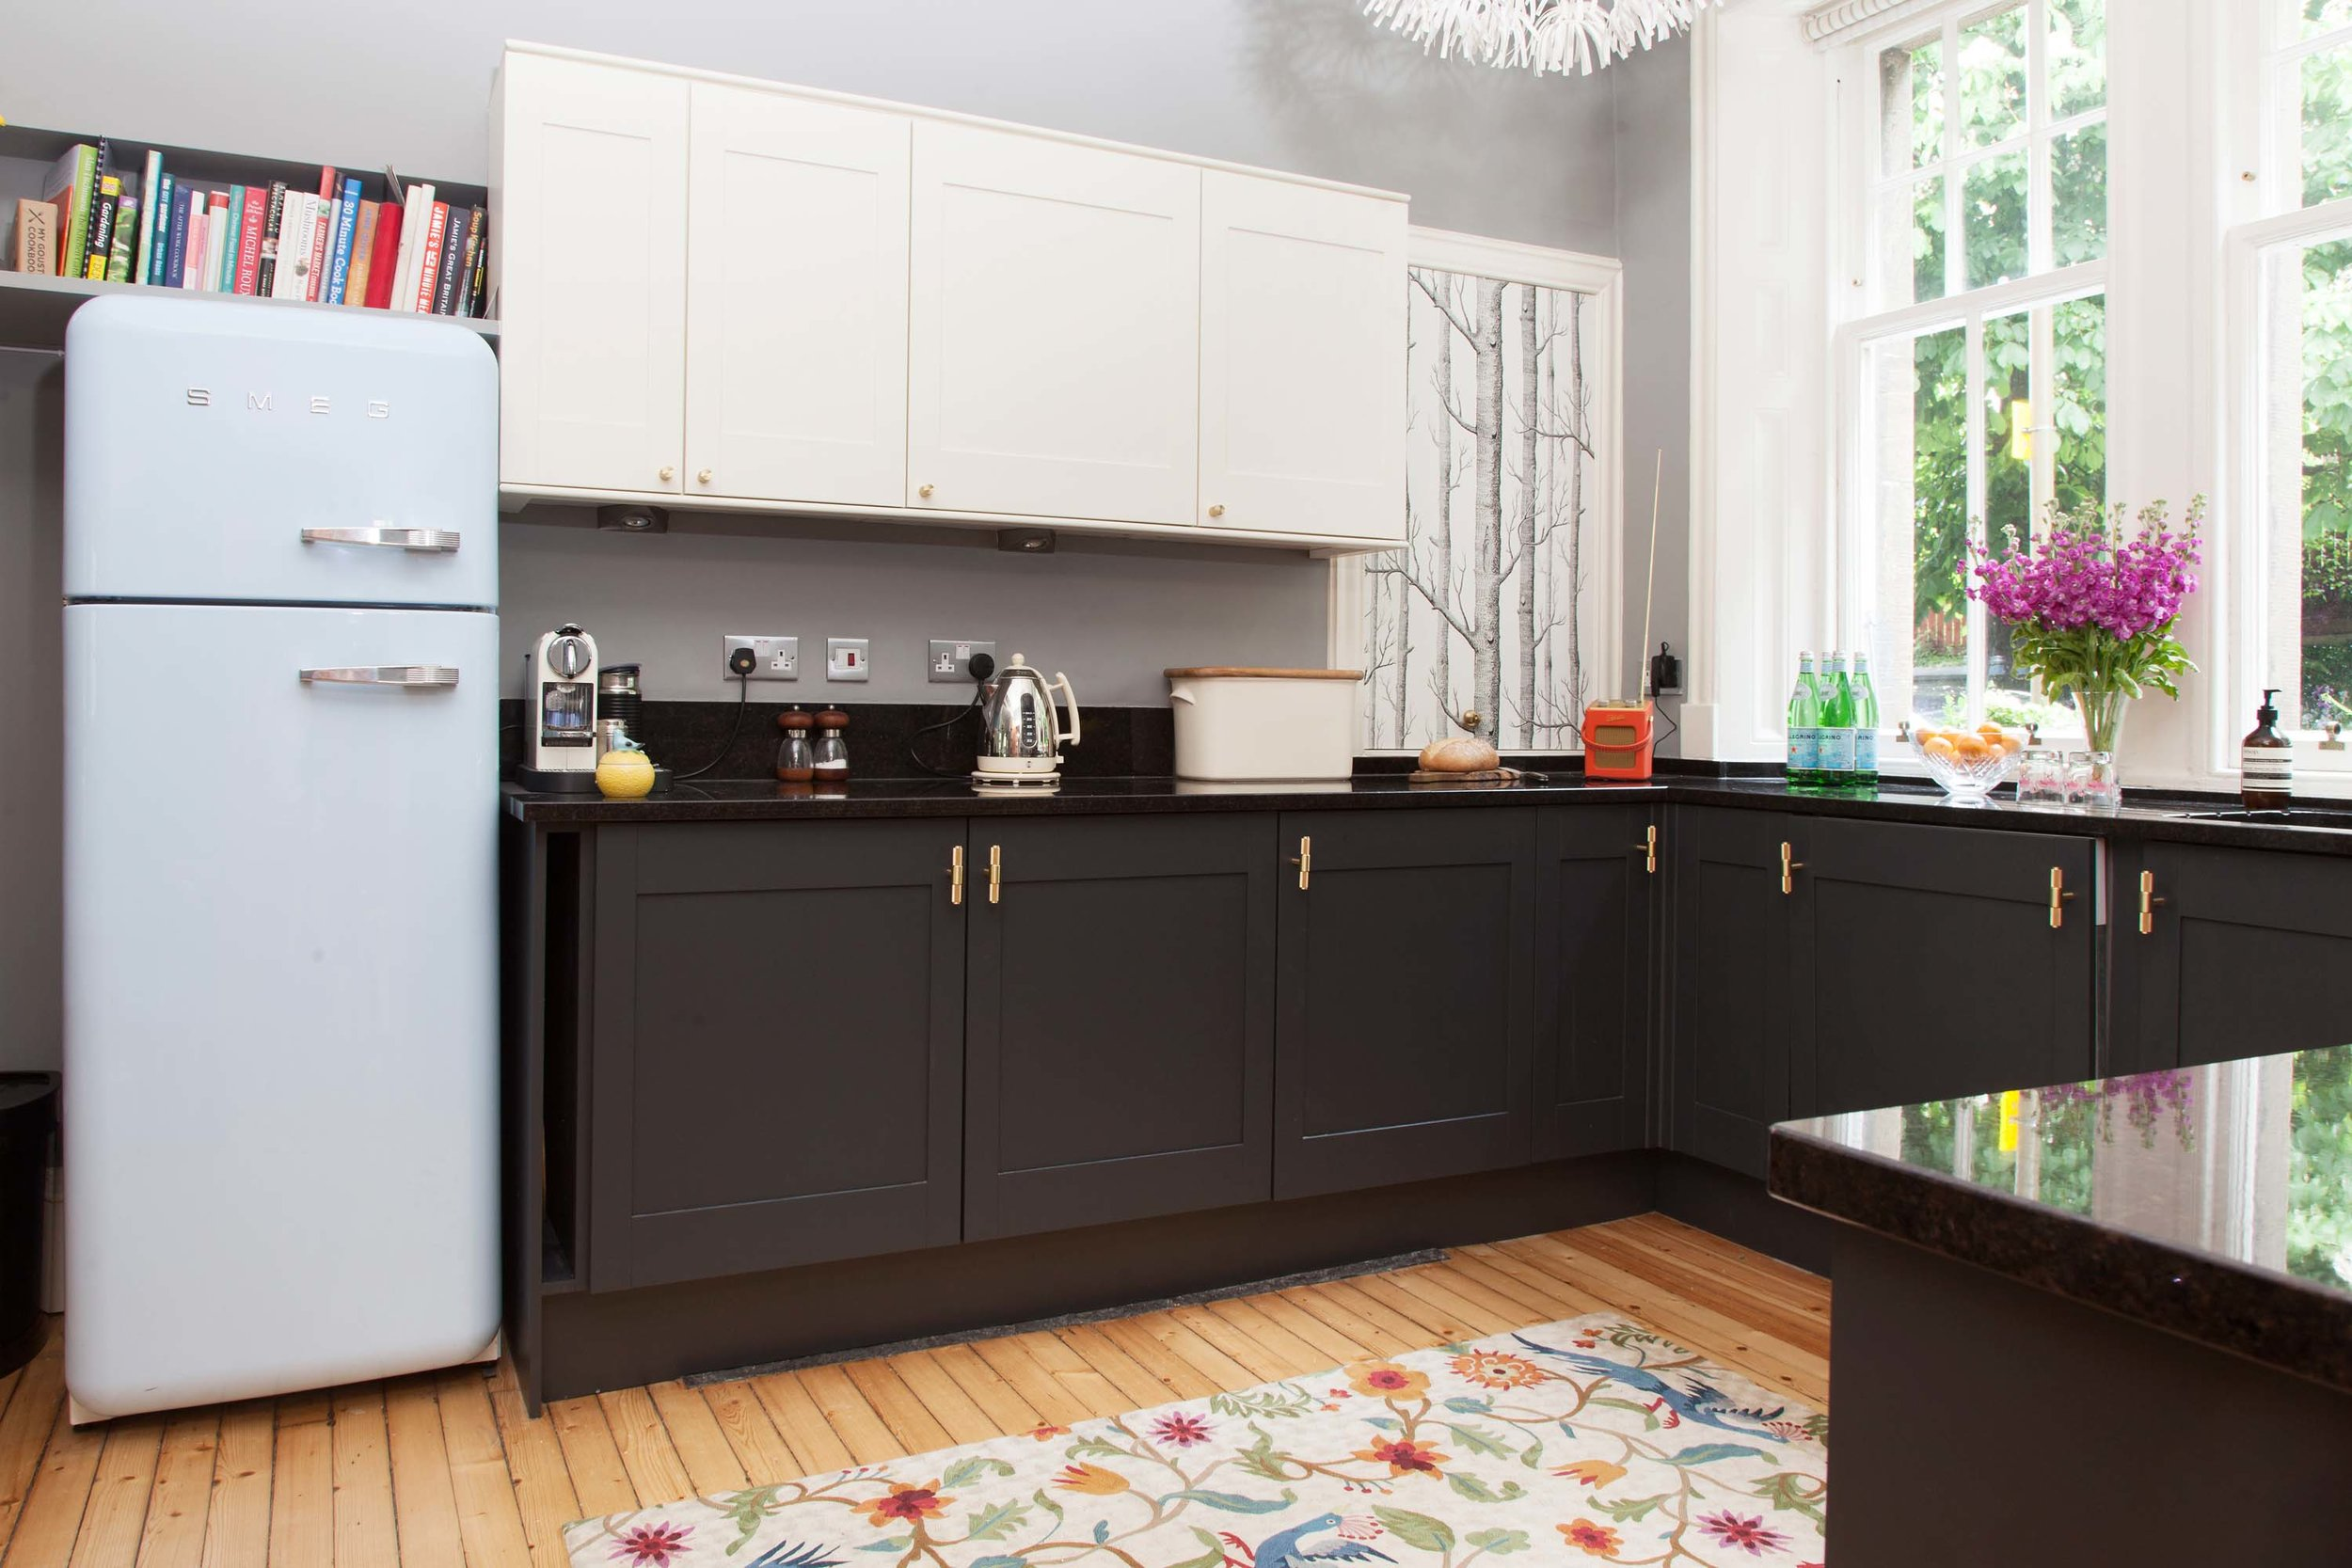 Black kitchen cupboards brass Buster + Punch handles